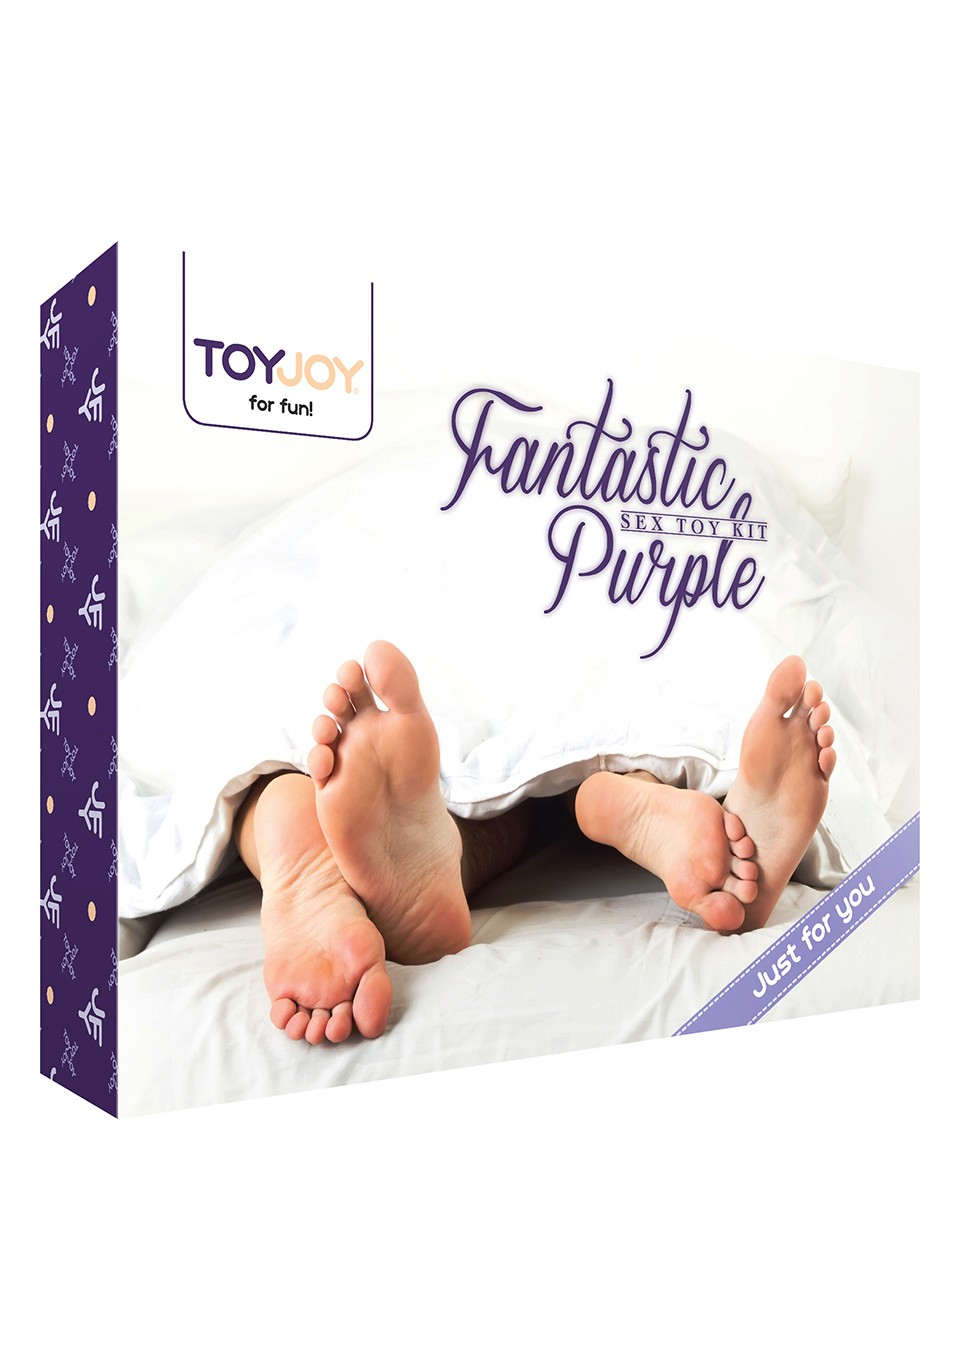 Sada FANTASTIC PURPLE SEX TOY KIT